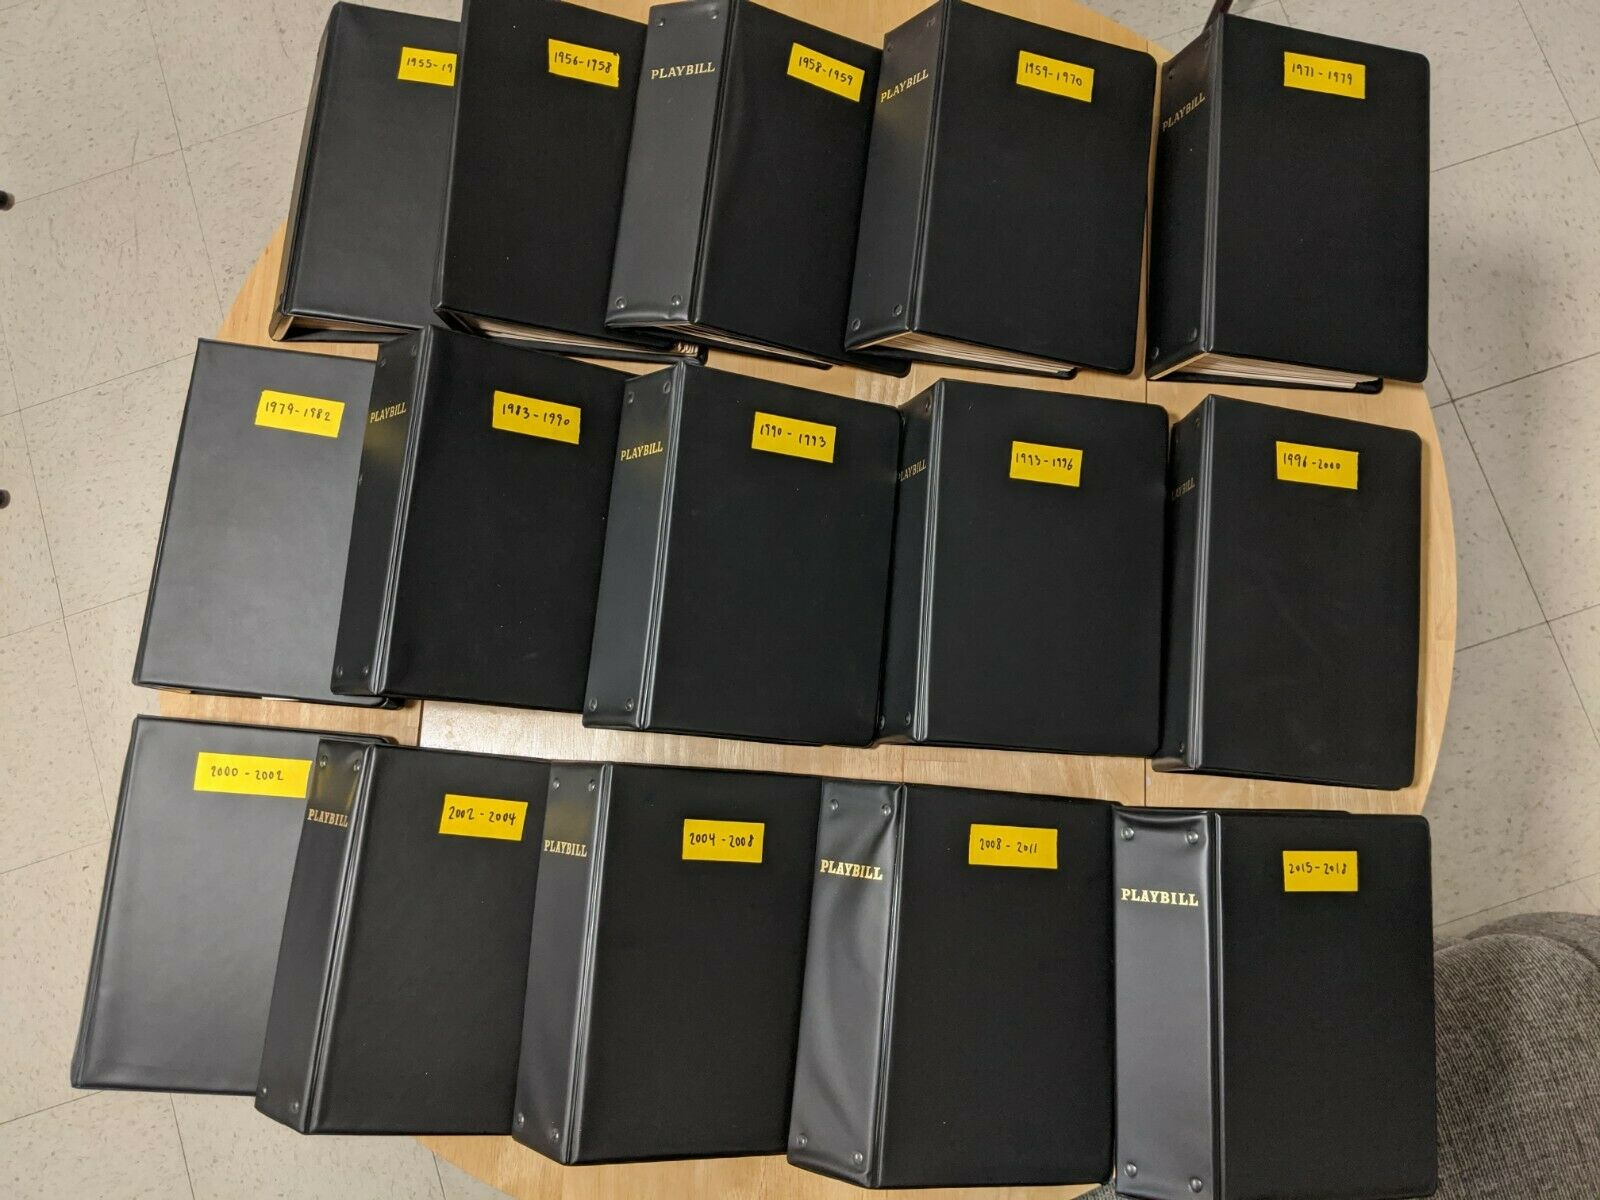 Collection of 188 Broadway Playbills from 1955-2018: 15 binders, great condition